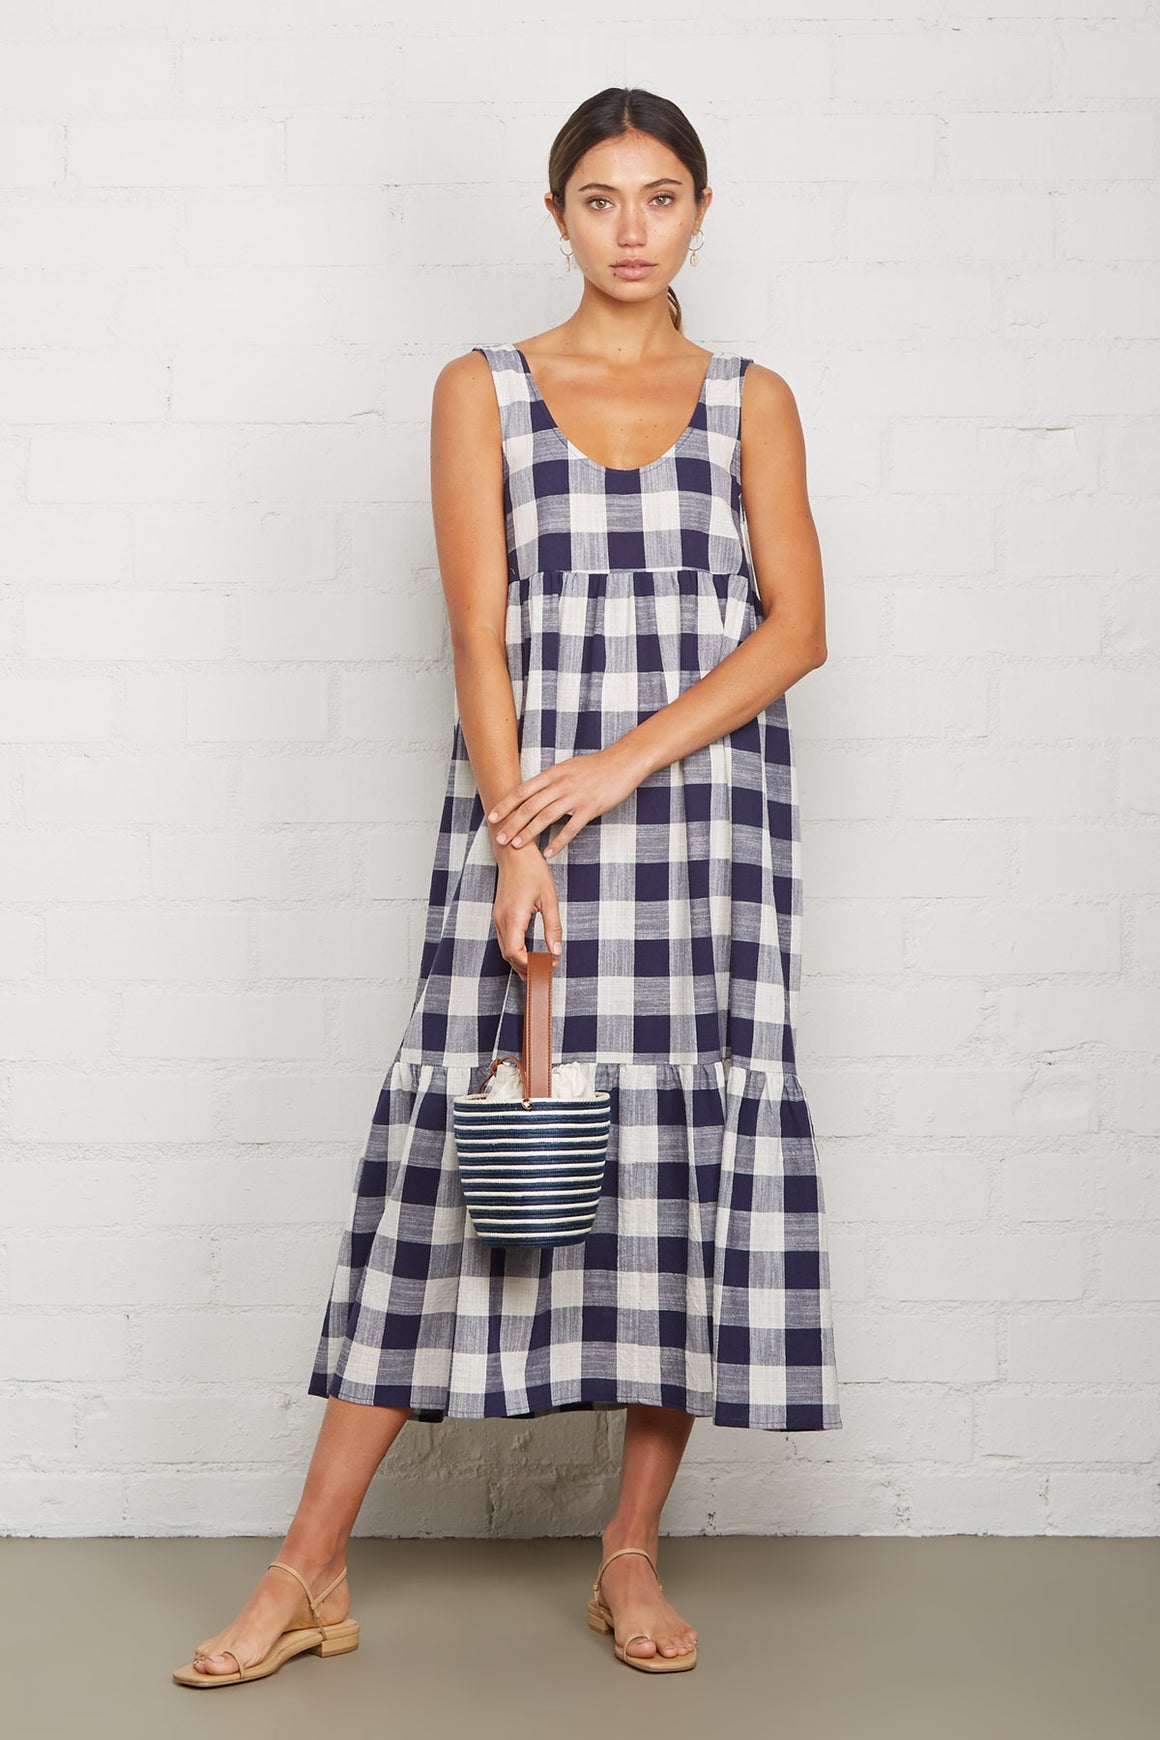 Picnic Plaid Bri Dress